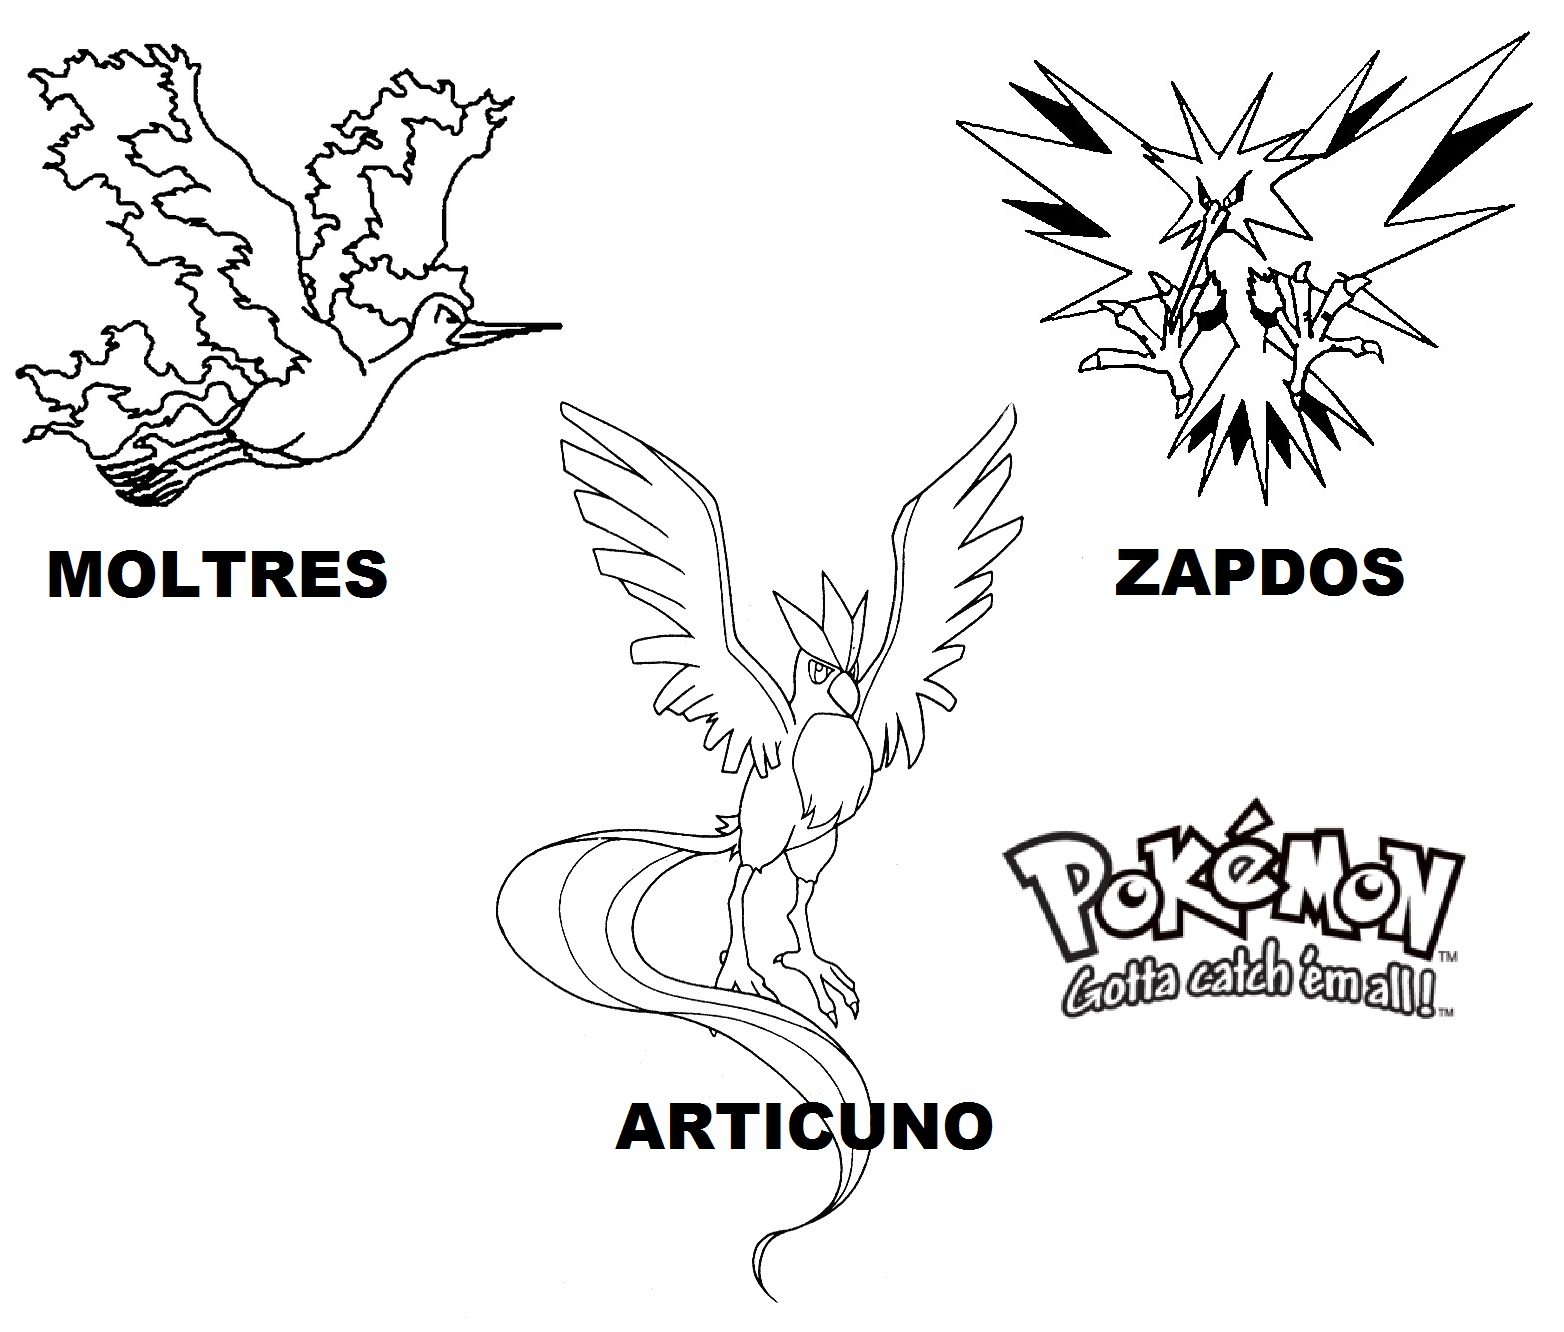 ZapdosMoltress And Articuno Legendary Pokemon Coloring Pages